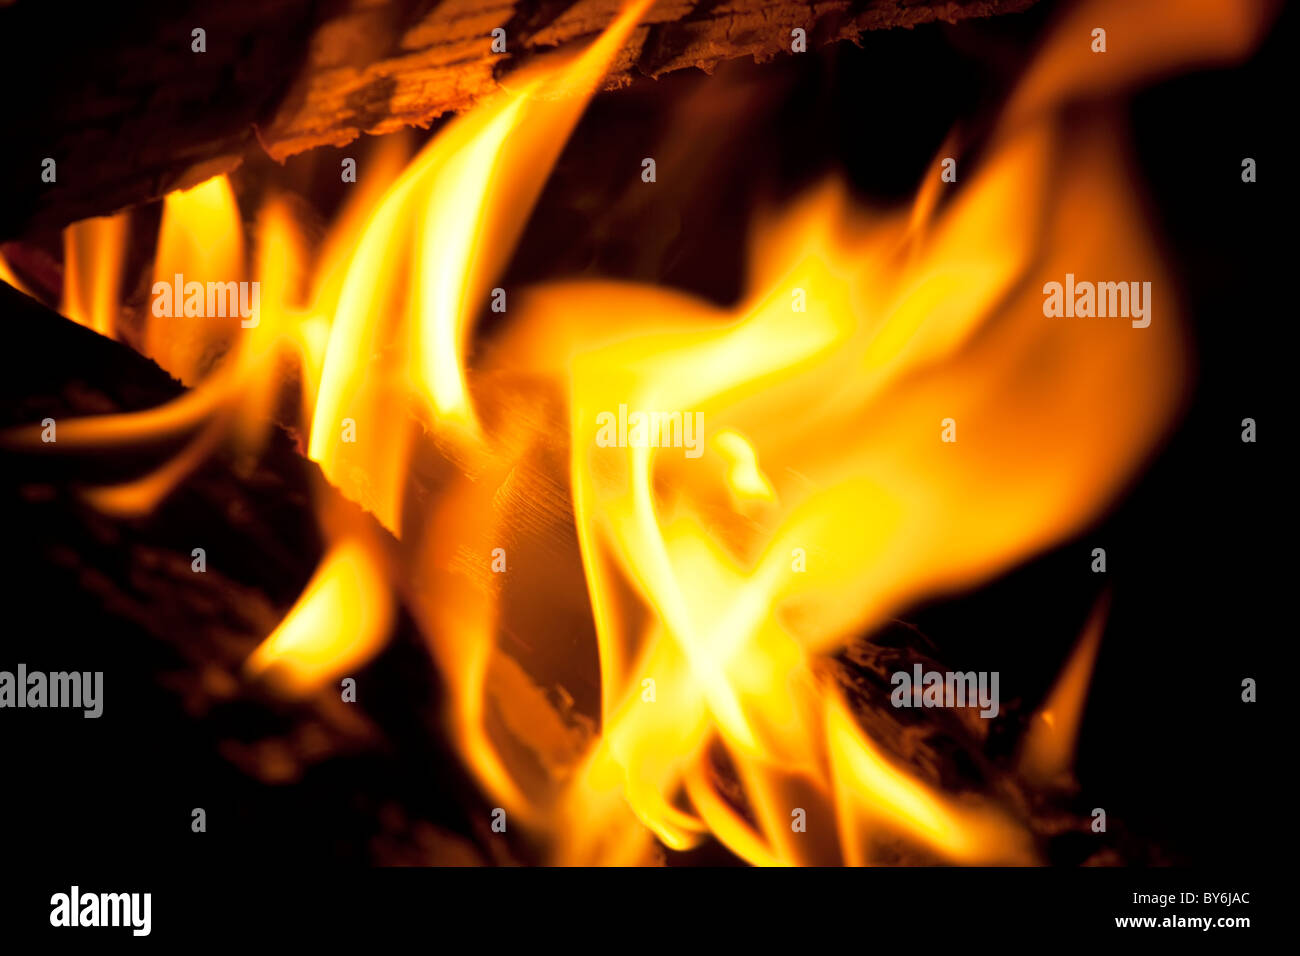 Logs burning in an outdoor campfire - Stock Image